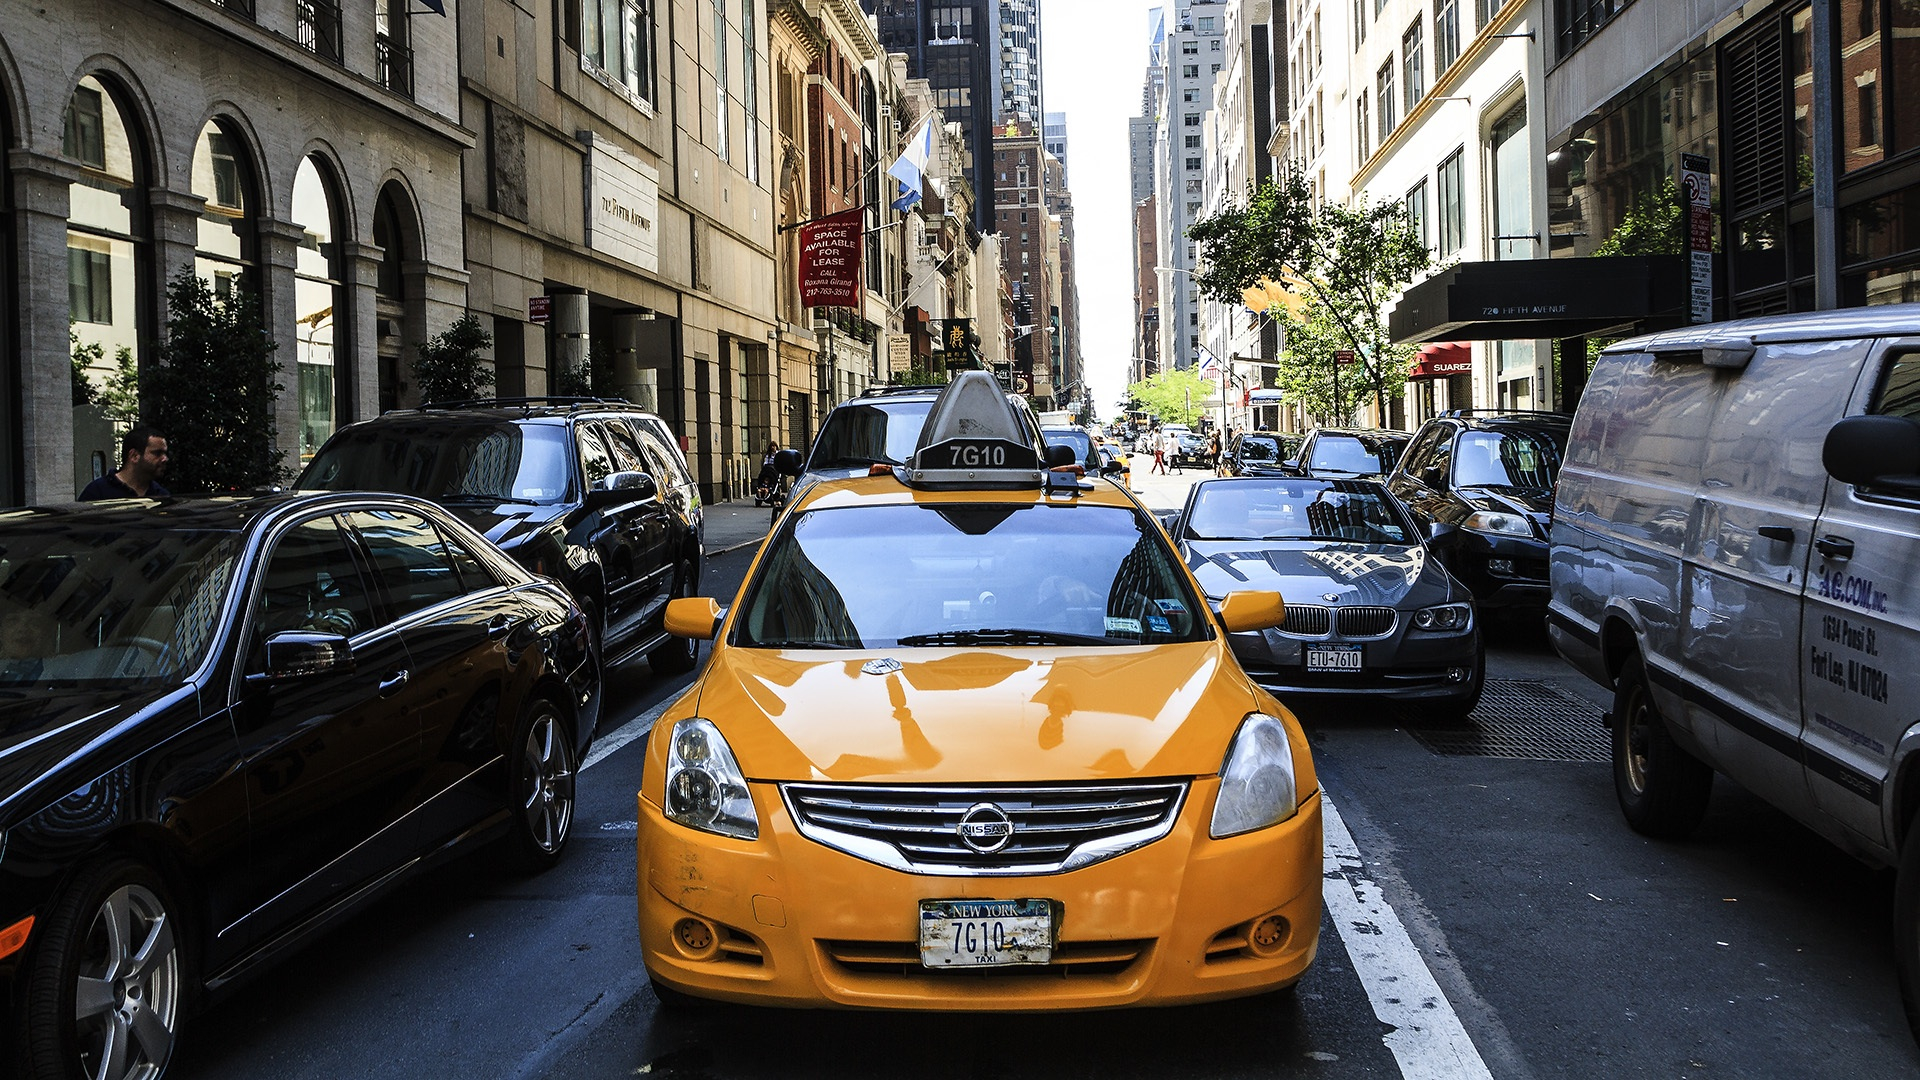 Yellow Cab, Cab, Cars, City, People, HQ Photo